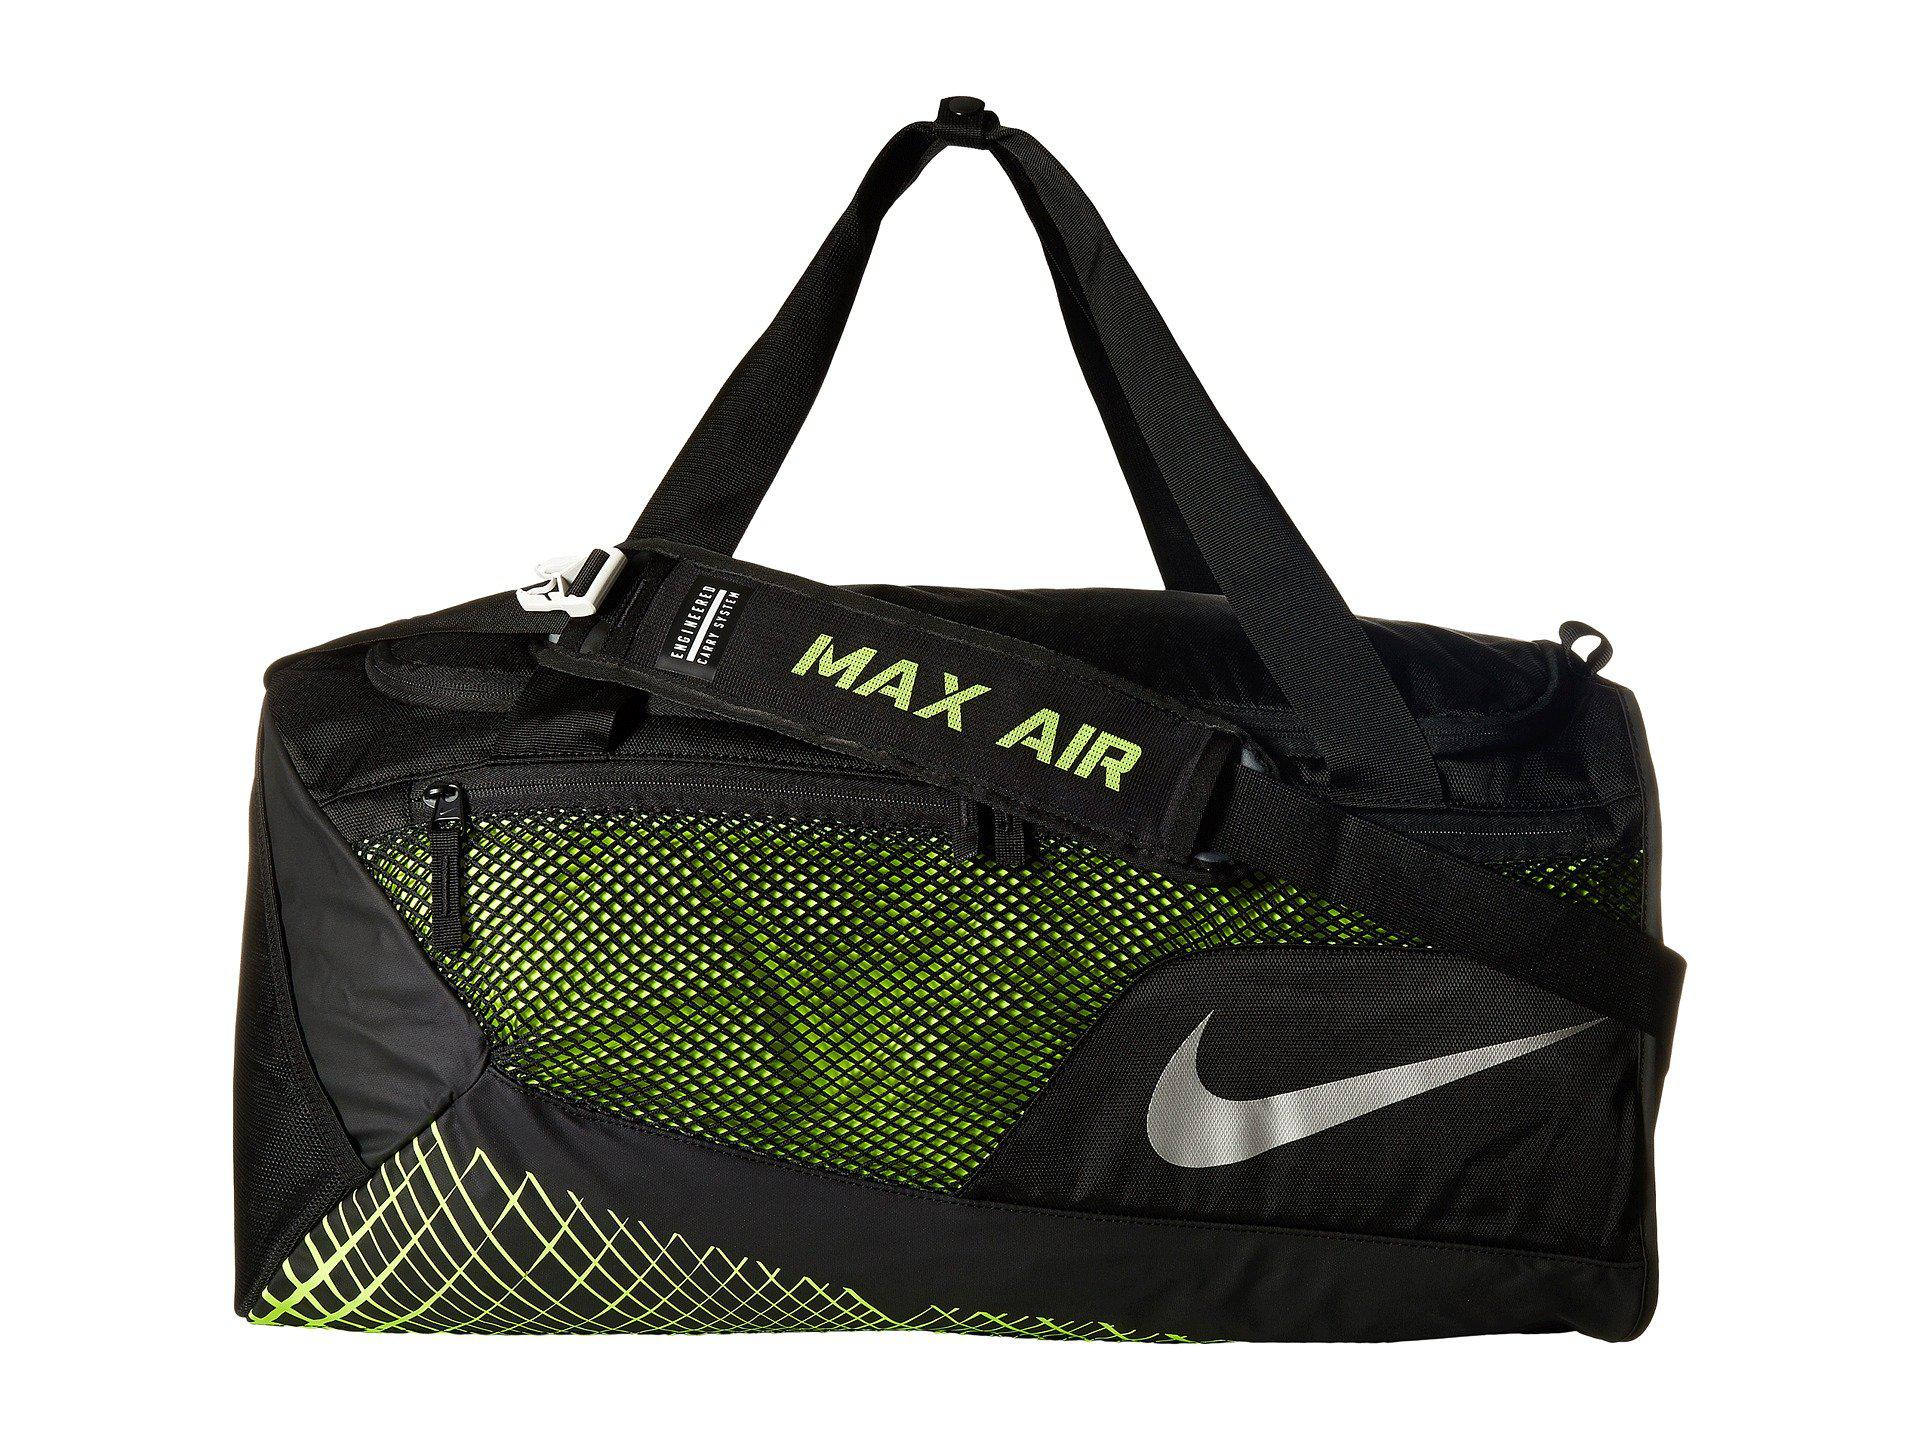 Lyst - Nike Vapor Max Air Training Medium Duffel Bag (black volt ... 9233137008357